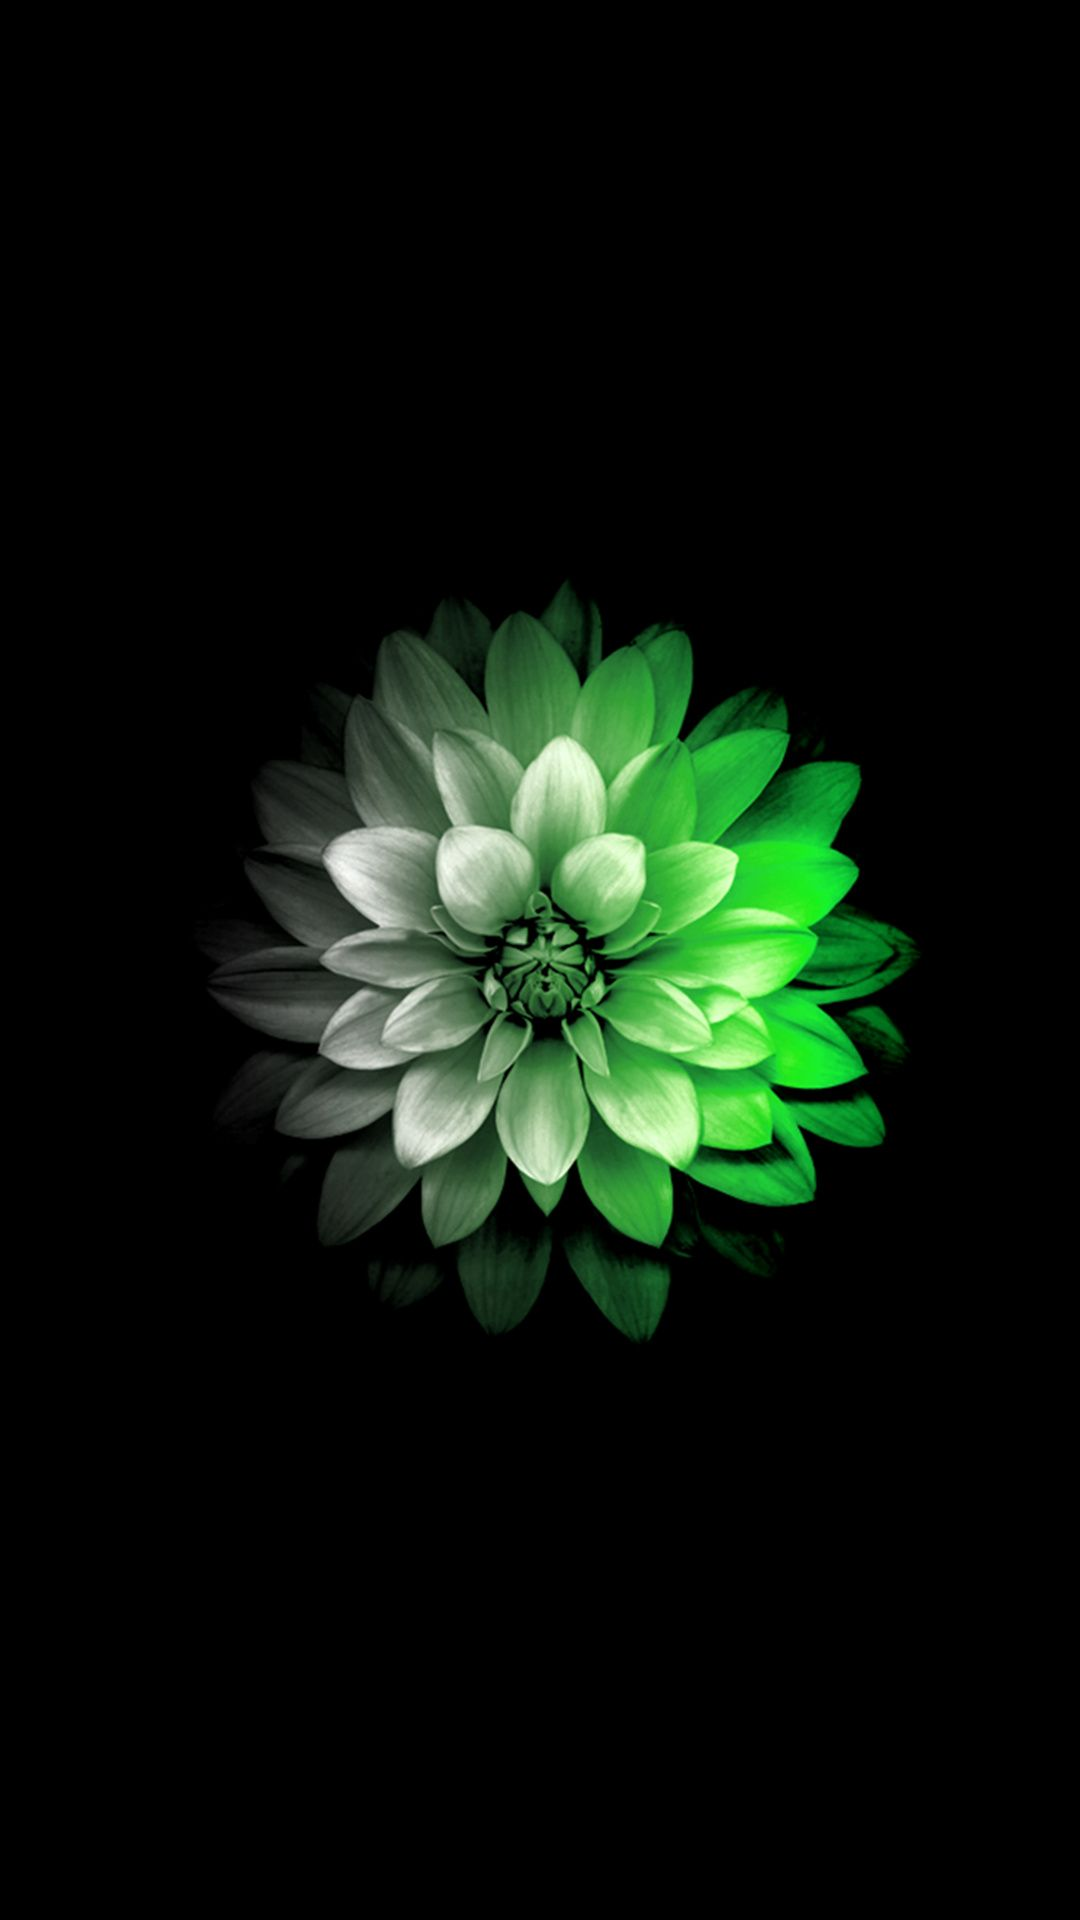 Black And White And Green Flower Iphone Wallpaper Beautiful Flowers Wallpapers Flower Wallpaper